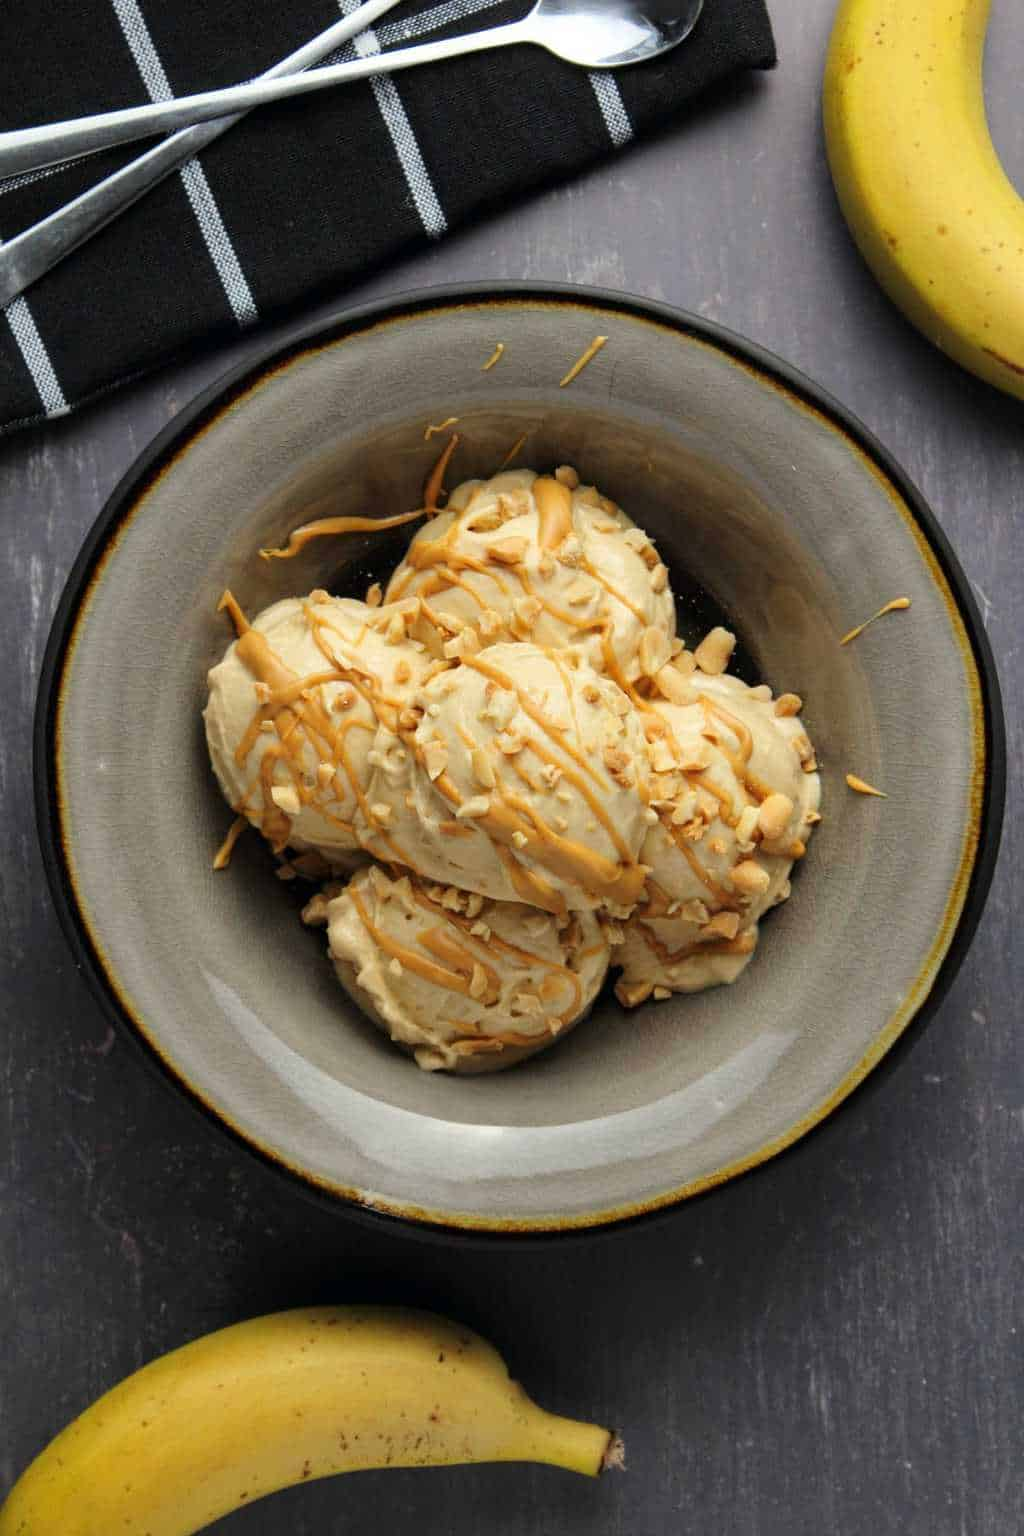 Peanut Butter Banana Ice Cream topped with drizzled peanut butter and crushed peanuts in a stone bowl.